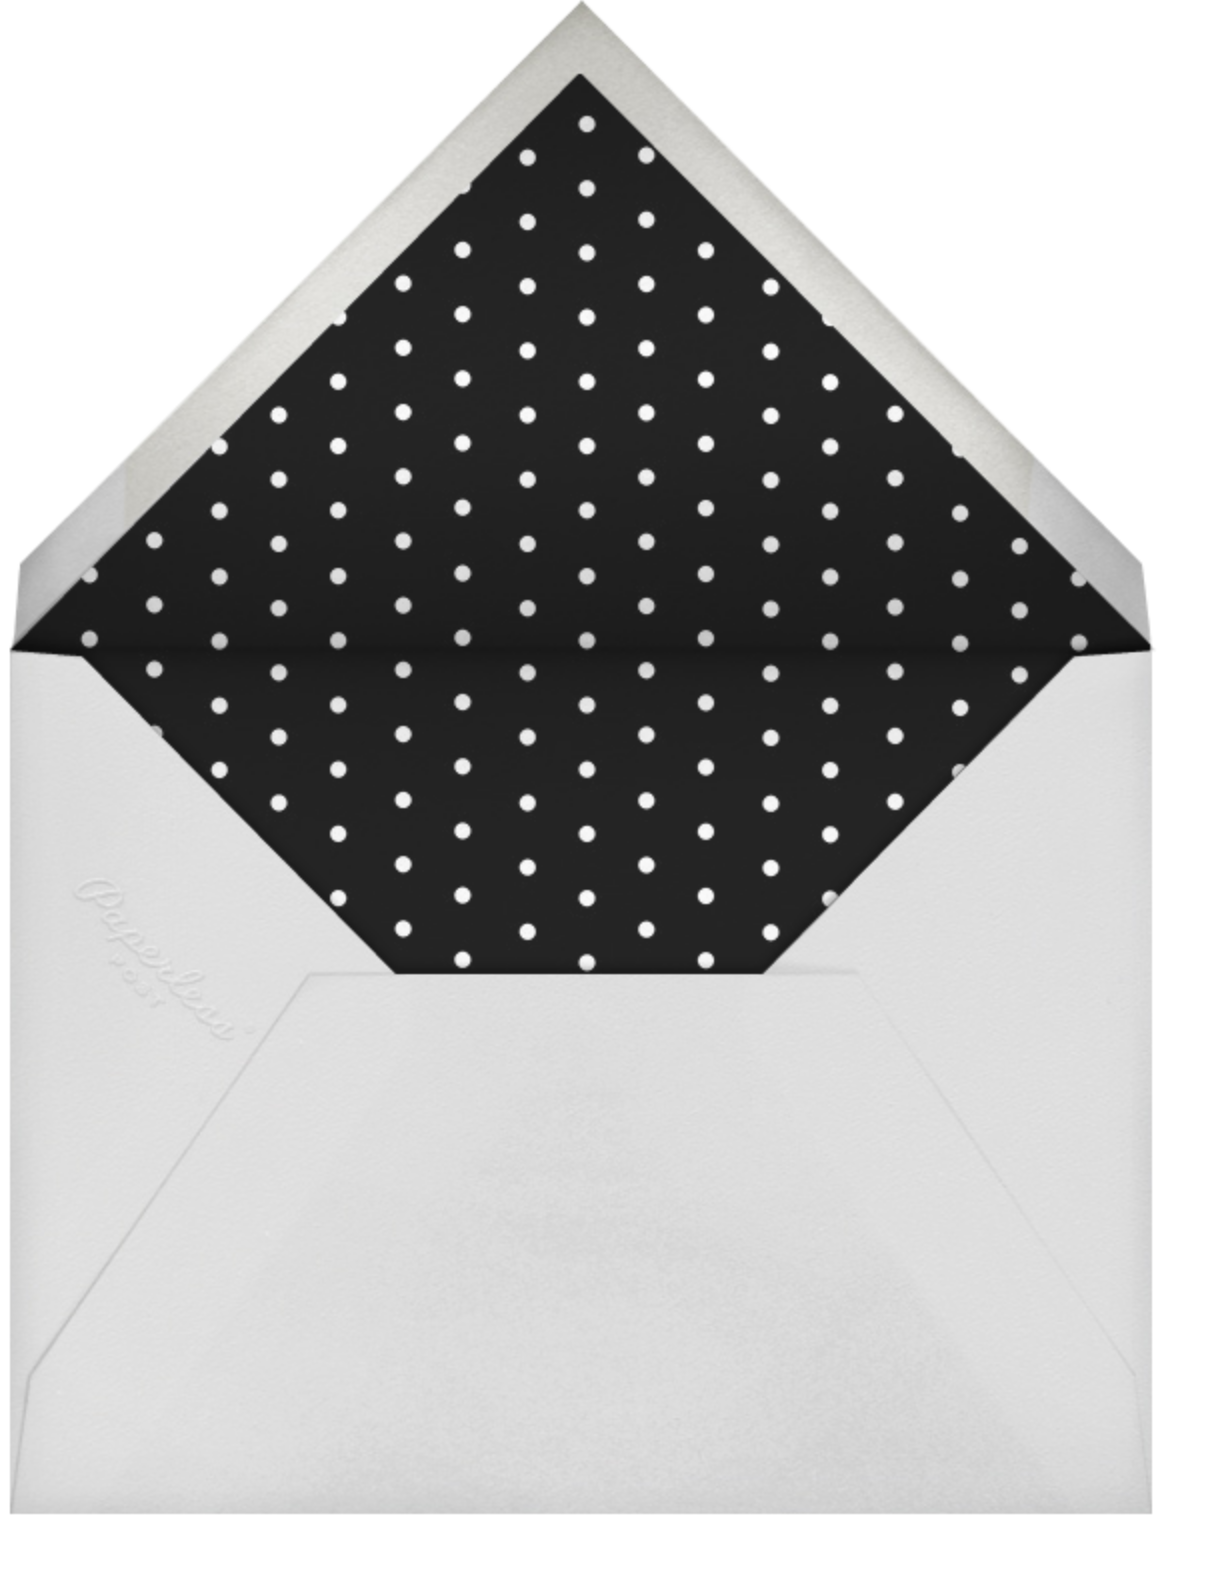 Shimmering New Year - Rifle Paper Co. - New Year - envelope back